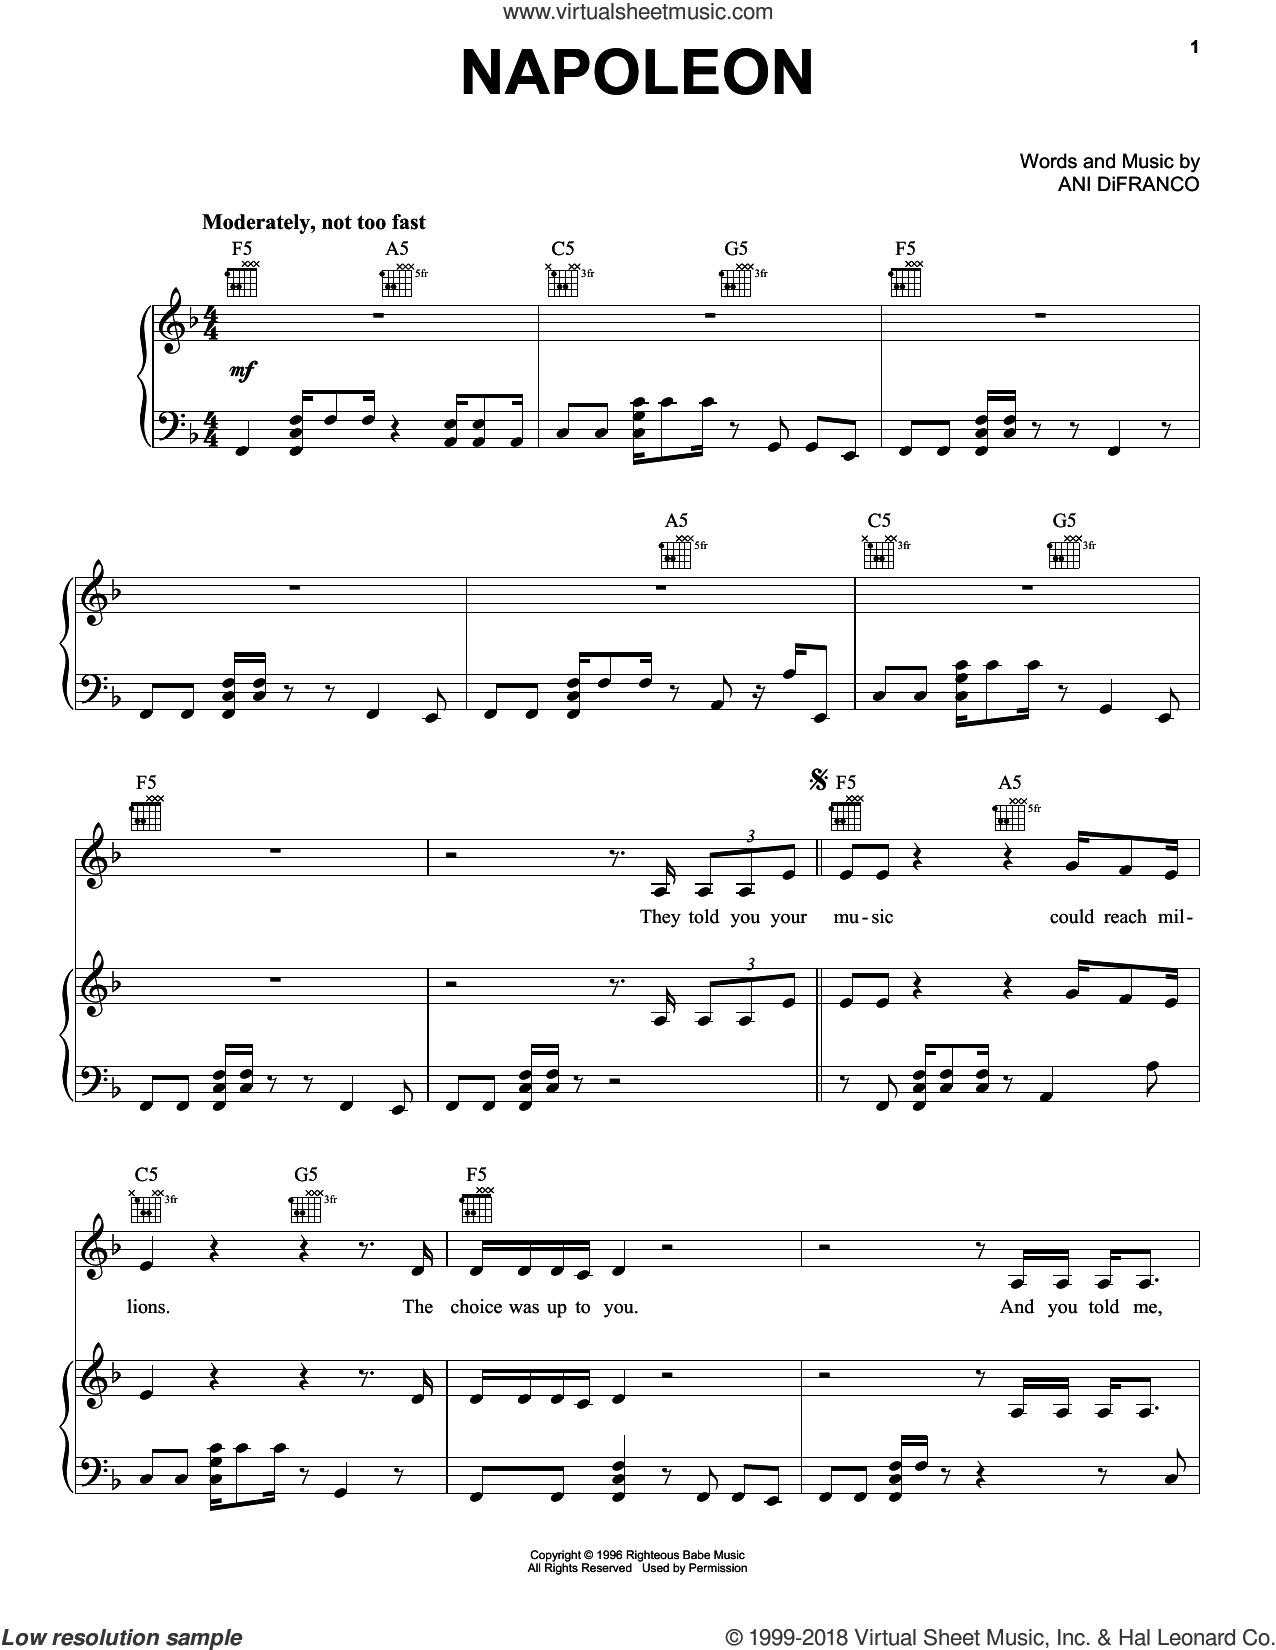 Napoleon sheet music for voice, piano or guitar by Ani DiFranco, intermediate